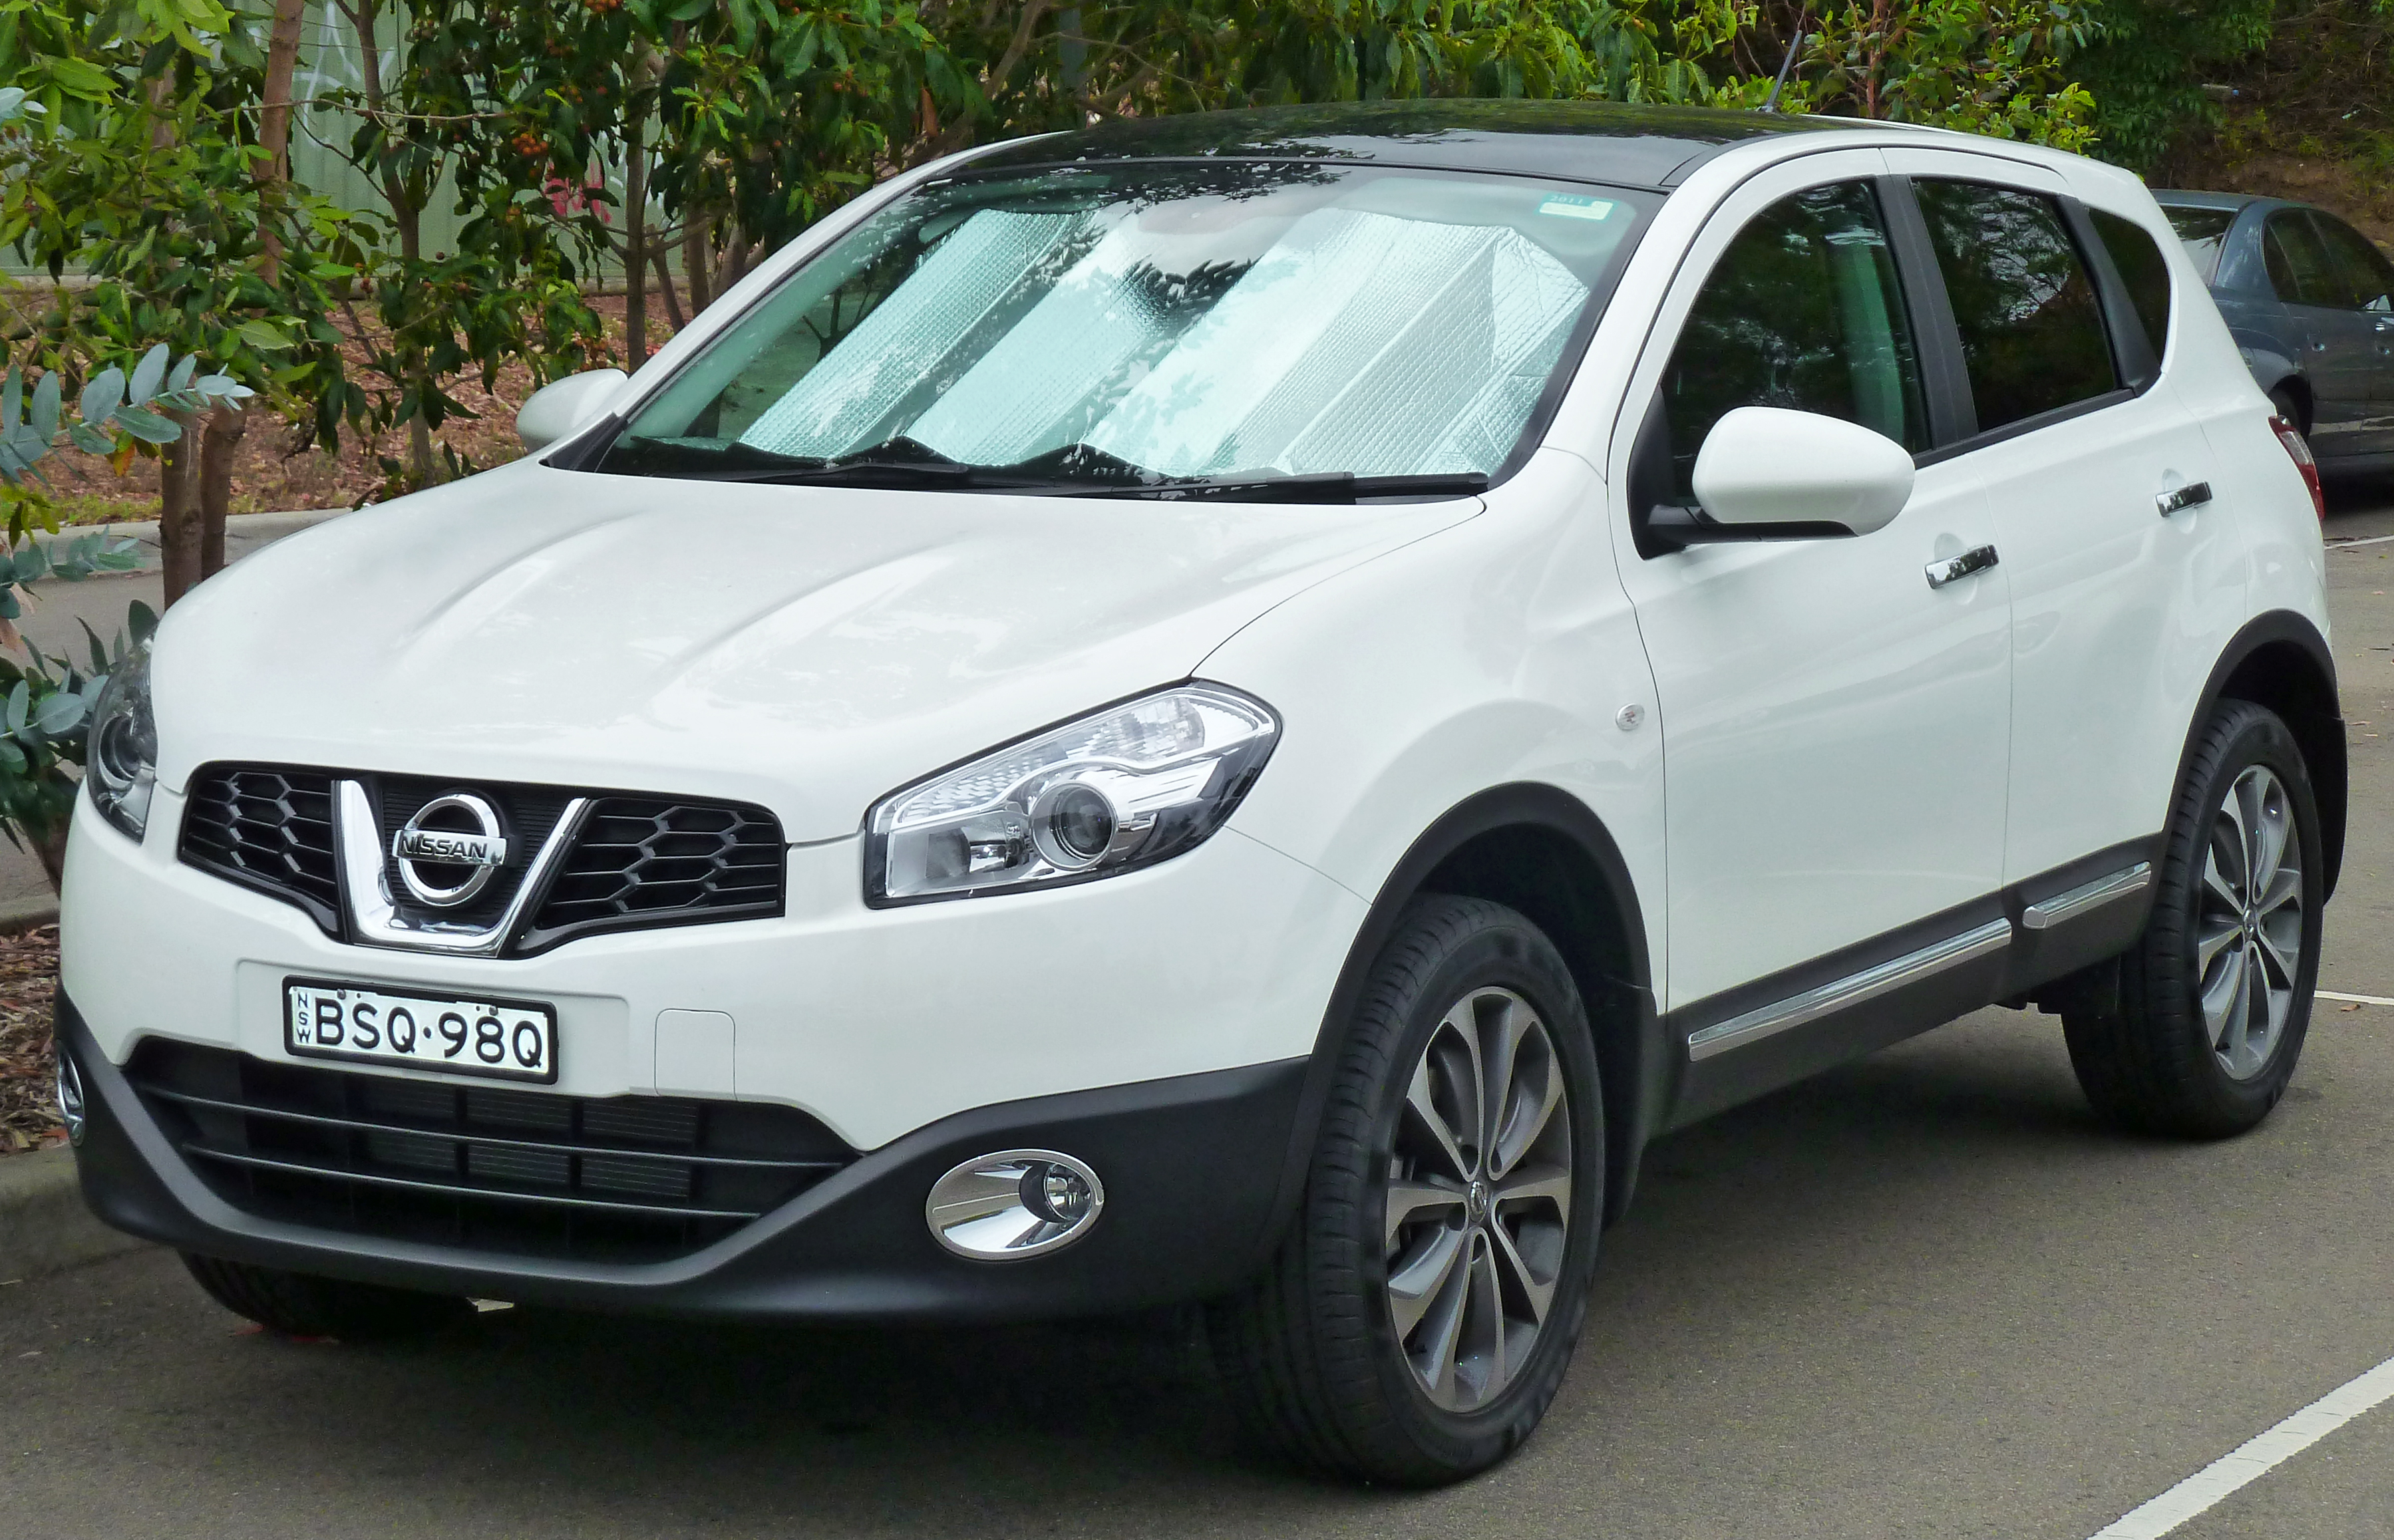 2011 nissan qashqai 2 pictures information and specs. Black Bedroom Furniture Sets. Home Design Ideas